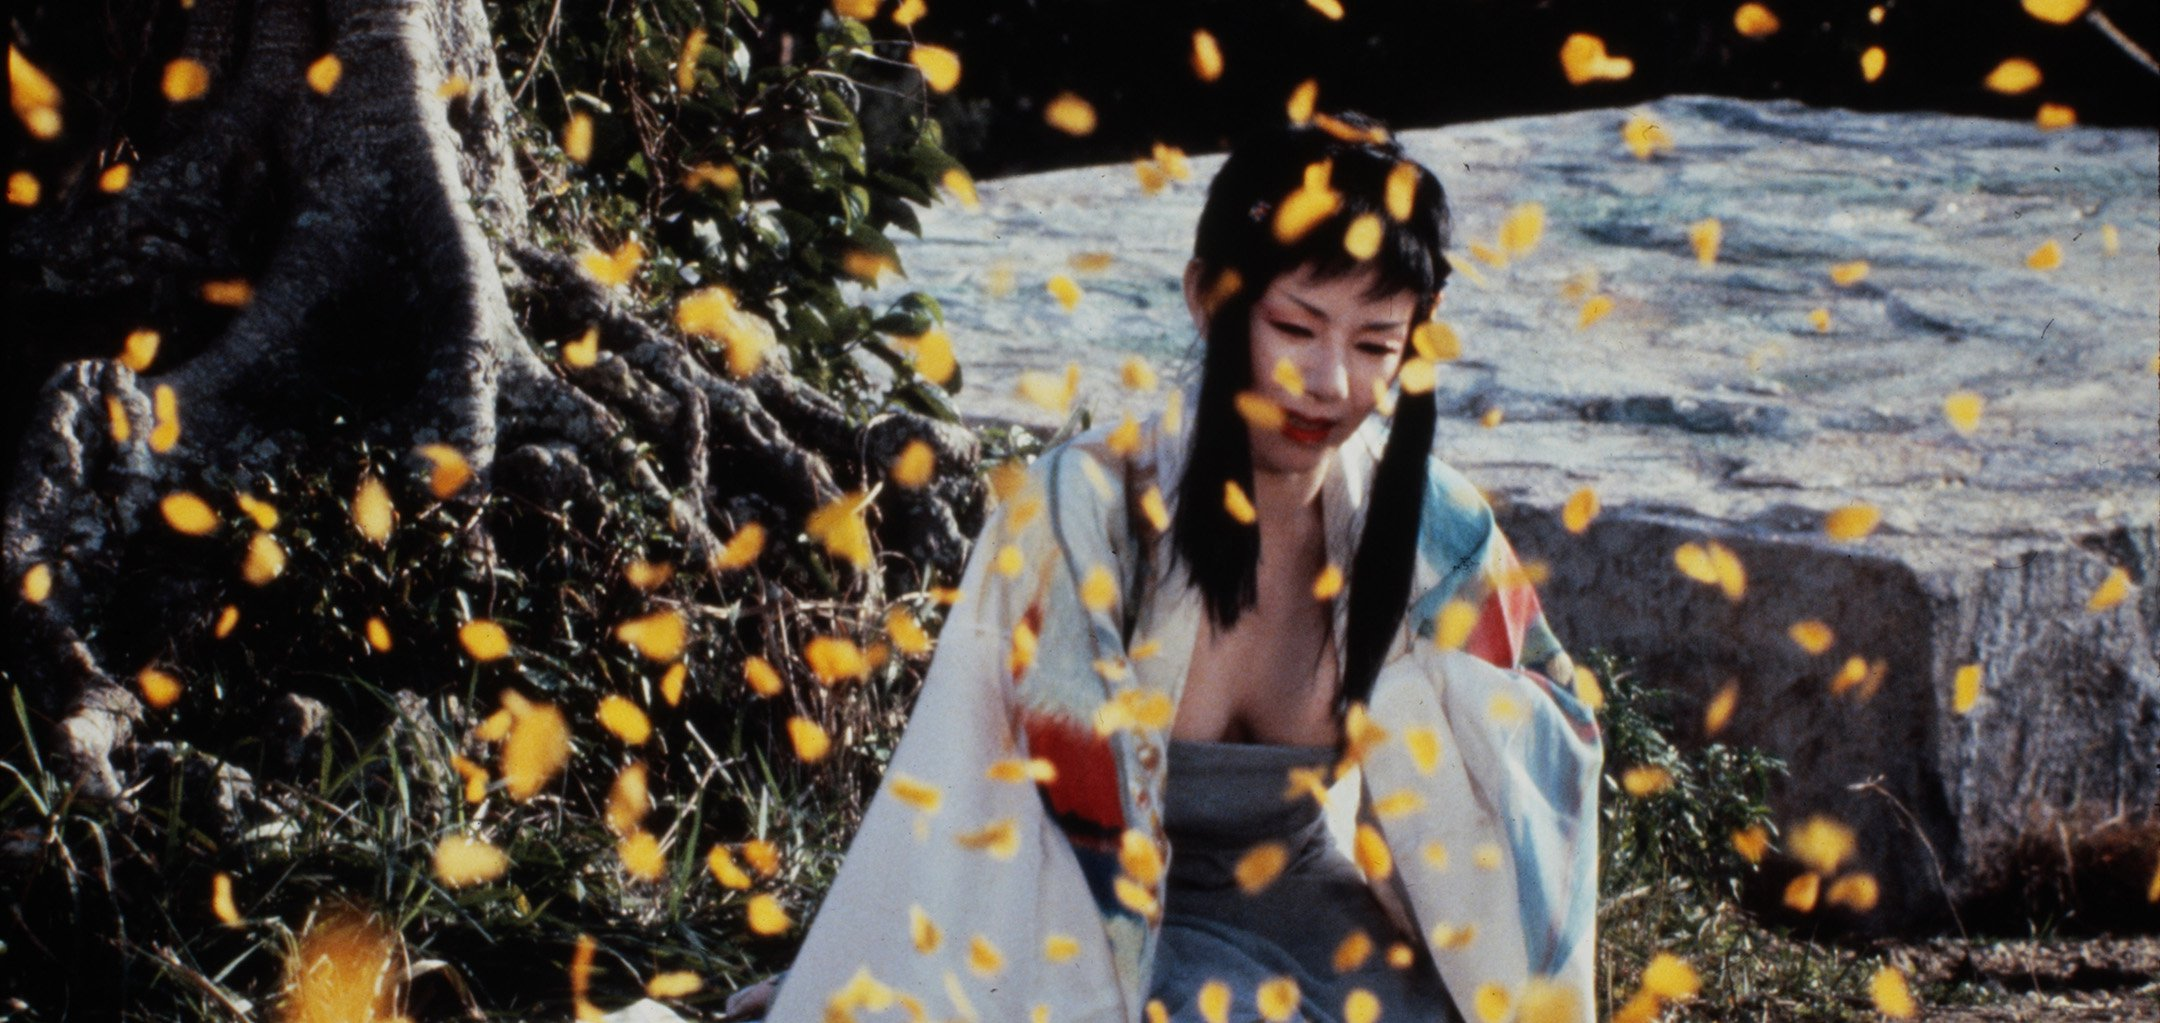 A woman in a kimono kneeling and crying as leaves fall in the foreground - still from 'Farewell to the Ark' (1984)